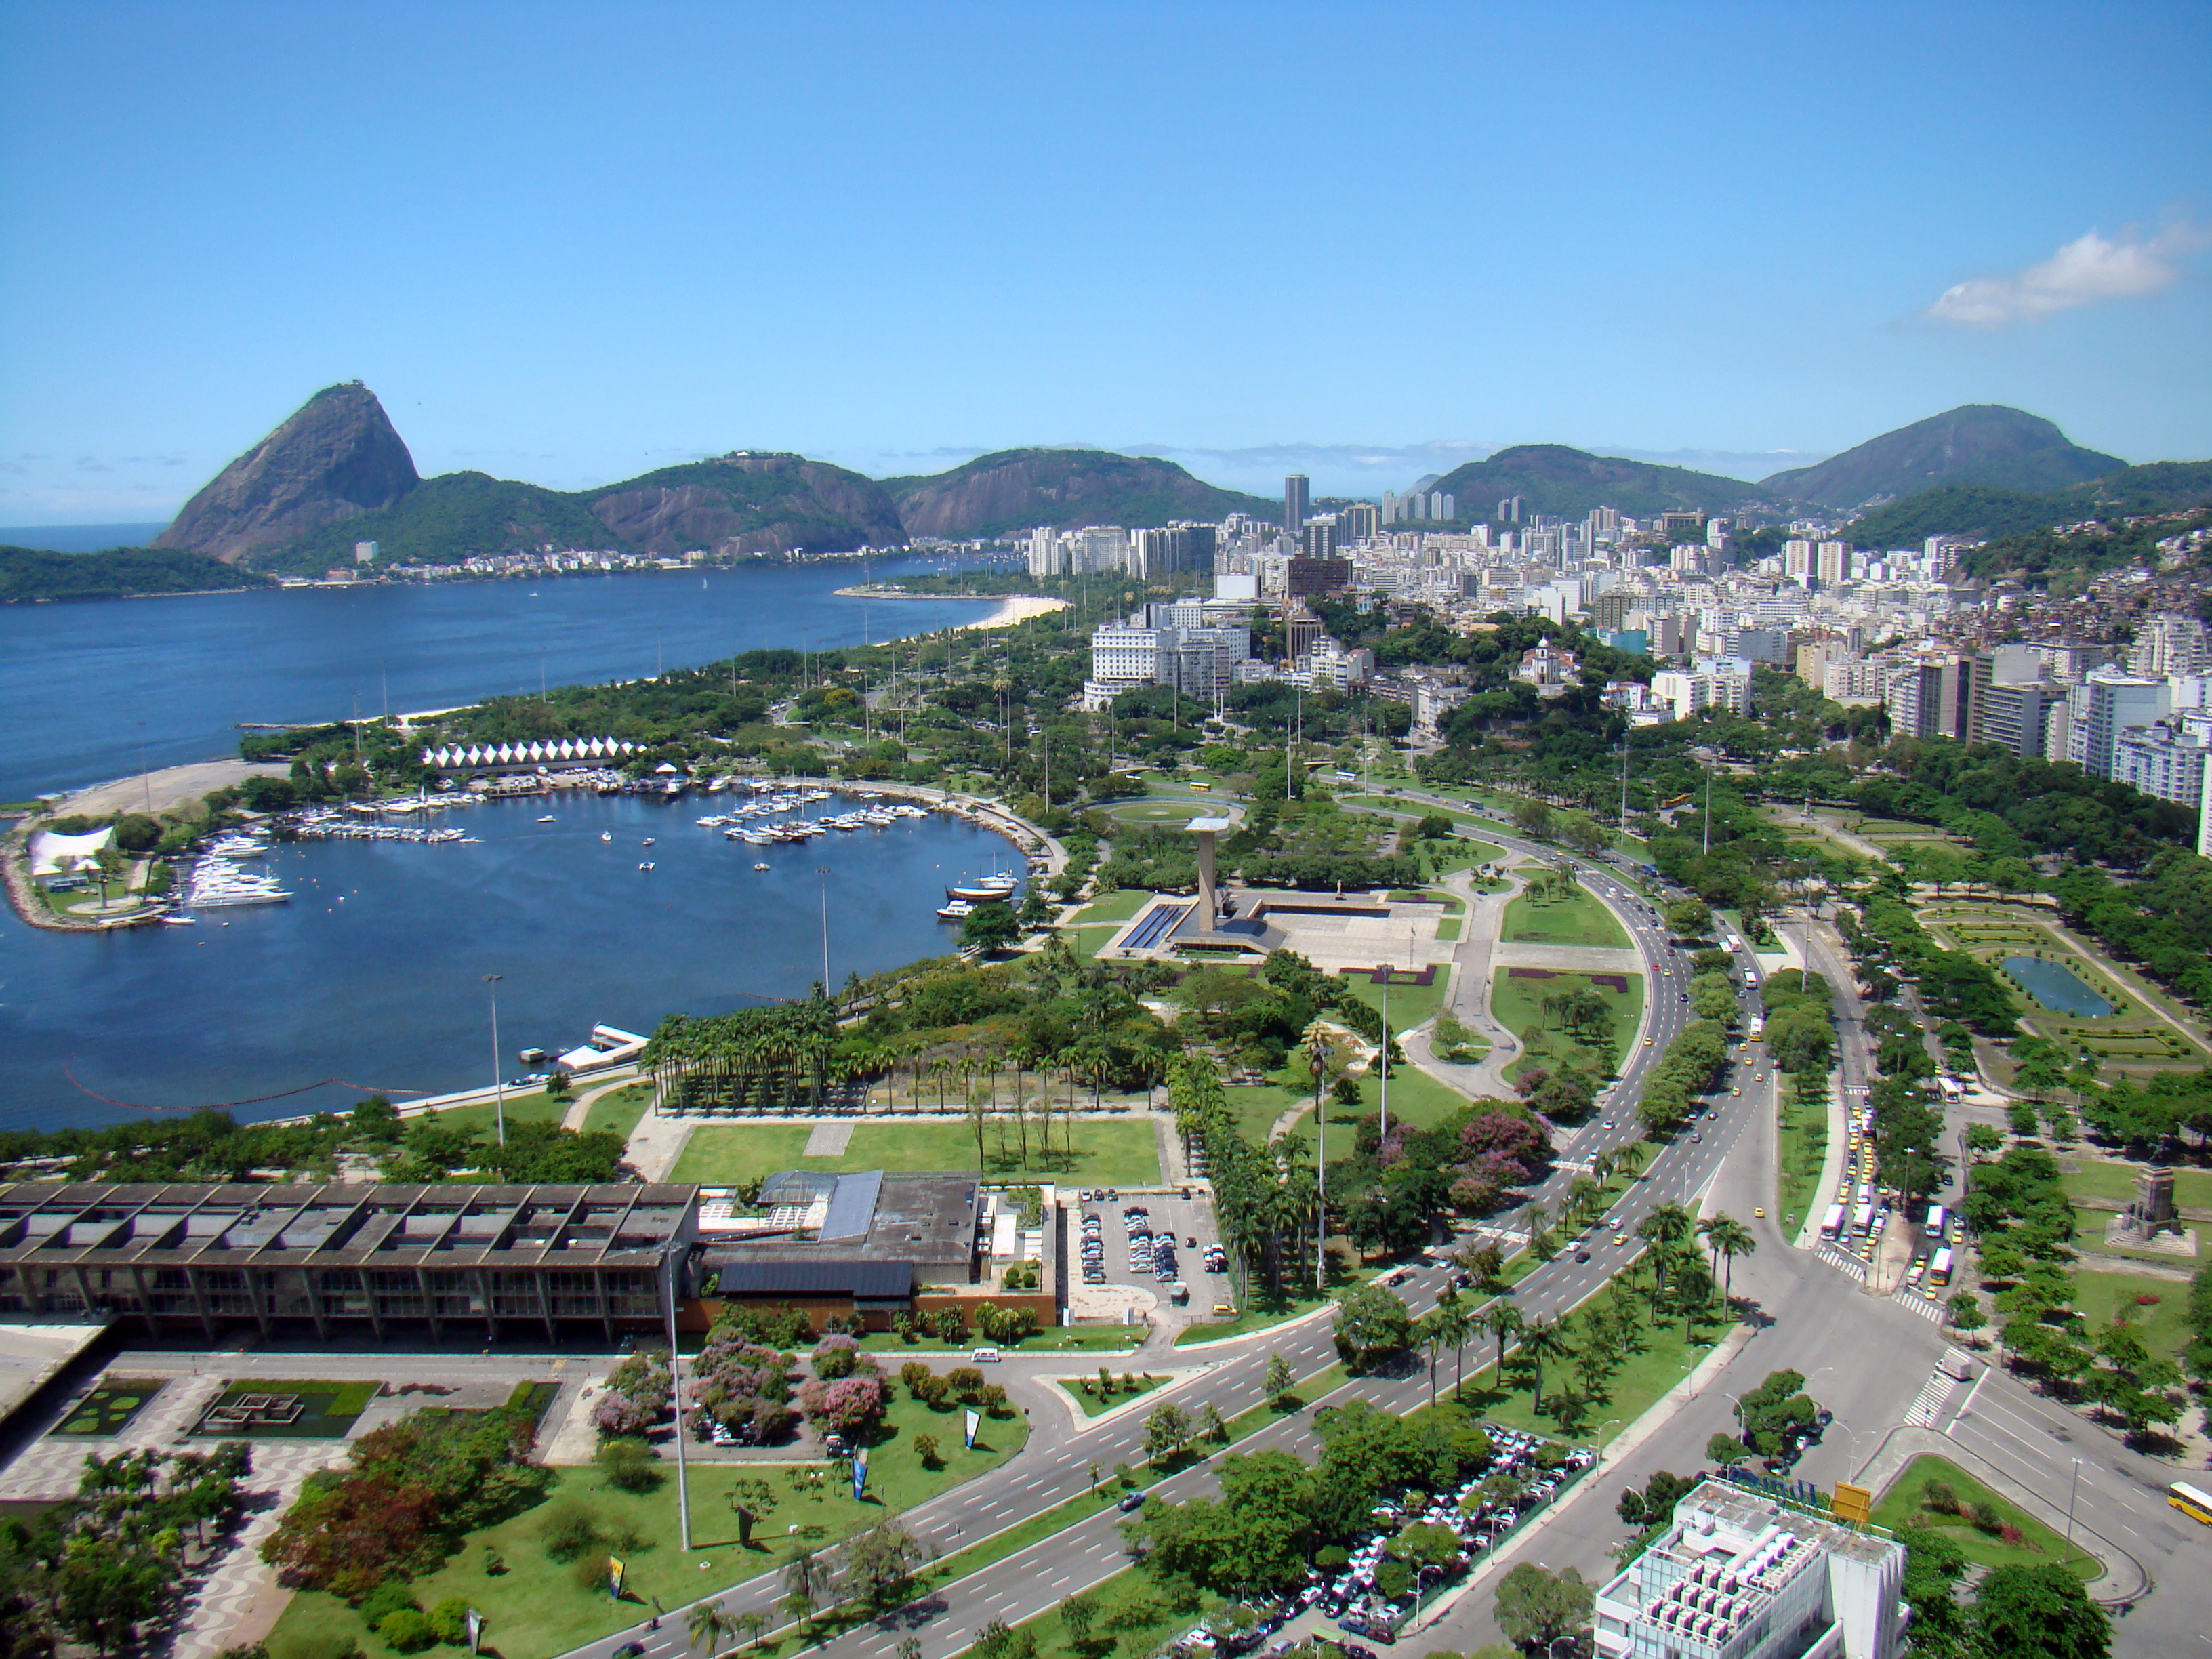 Vista do Parque do Flamengo